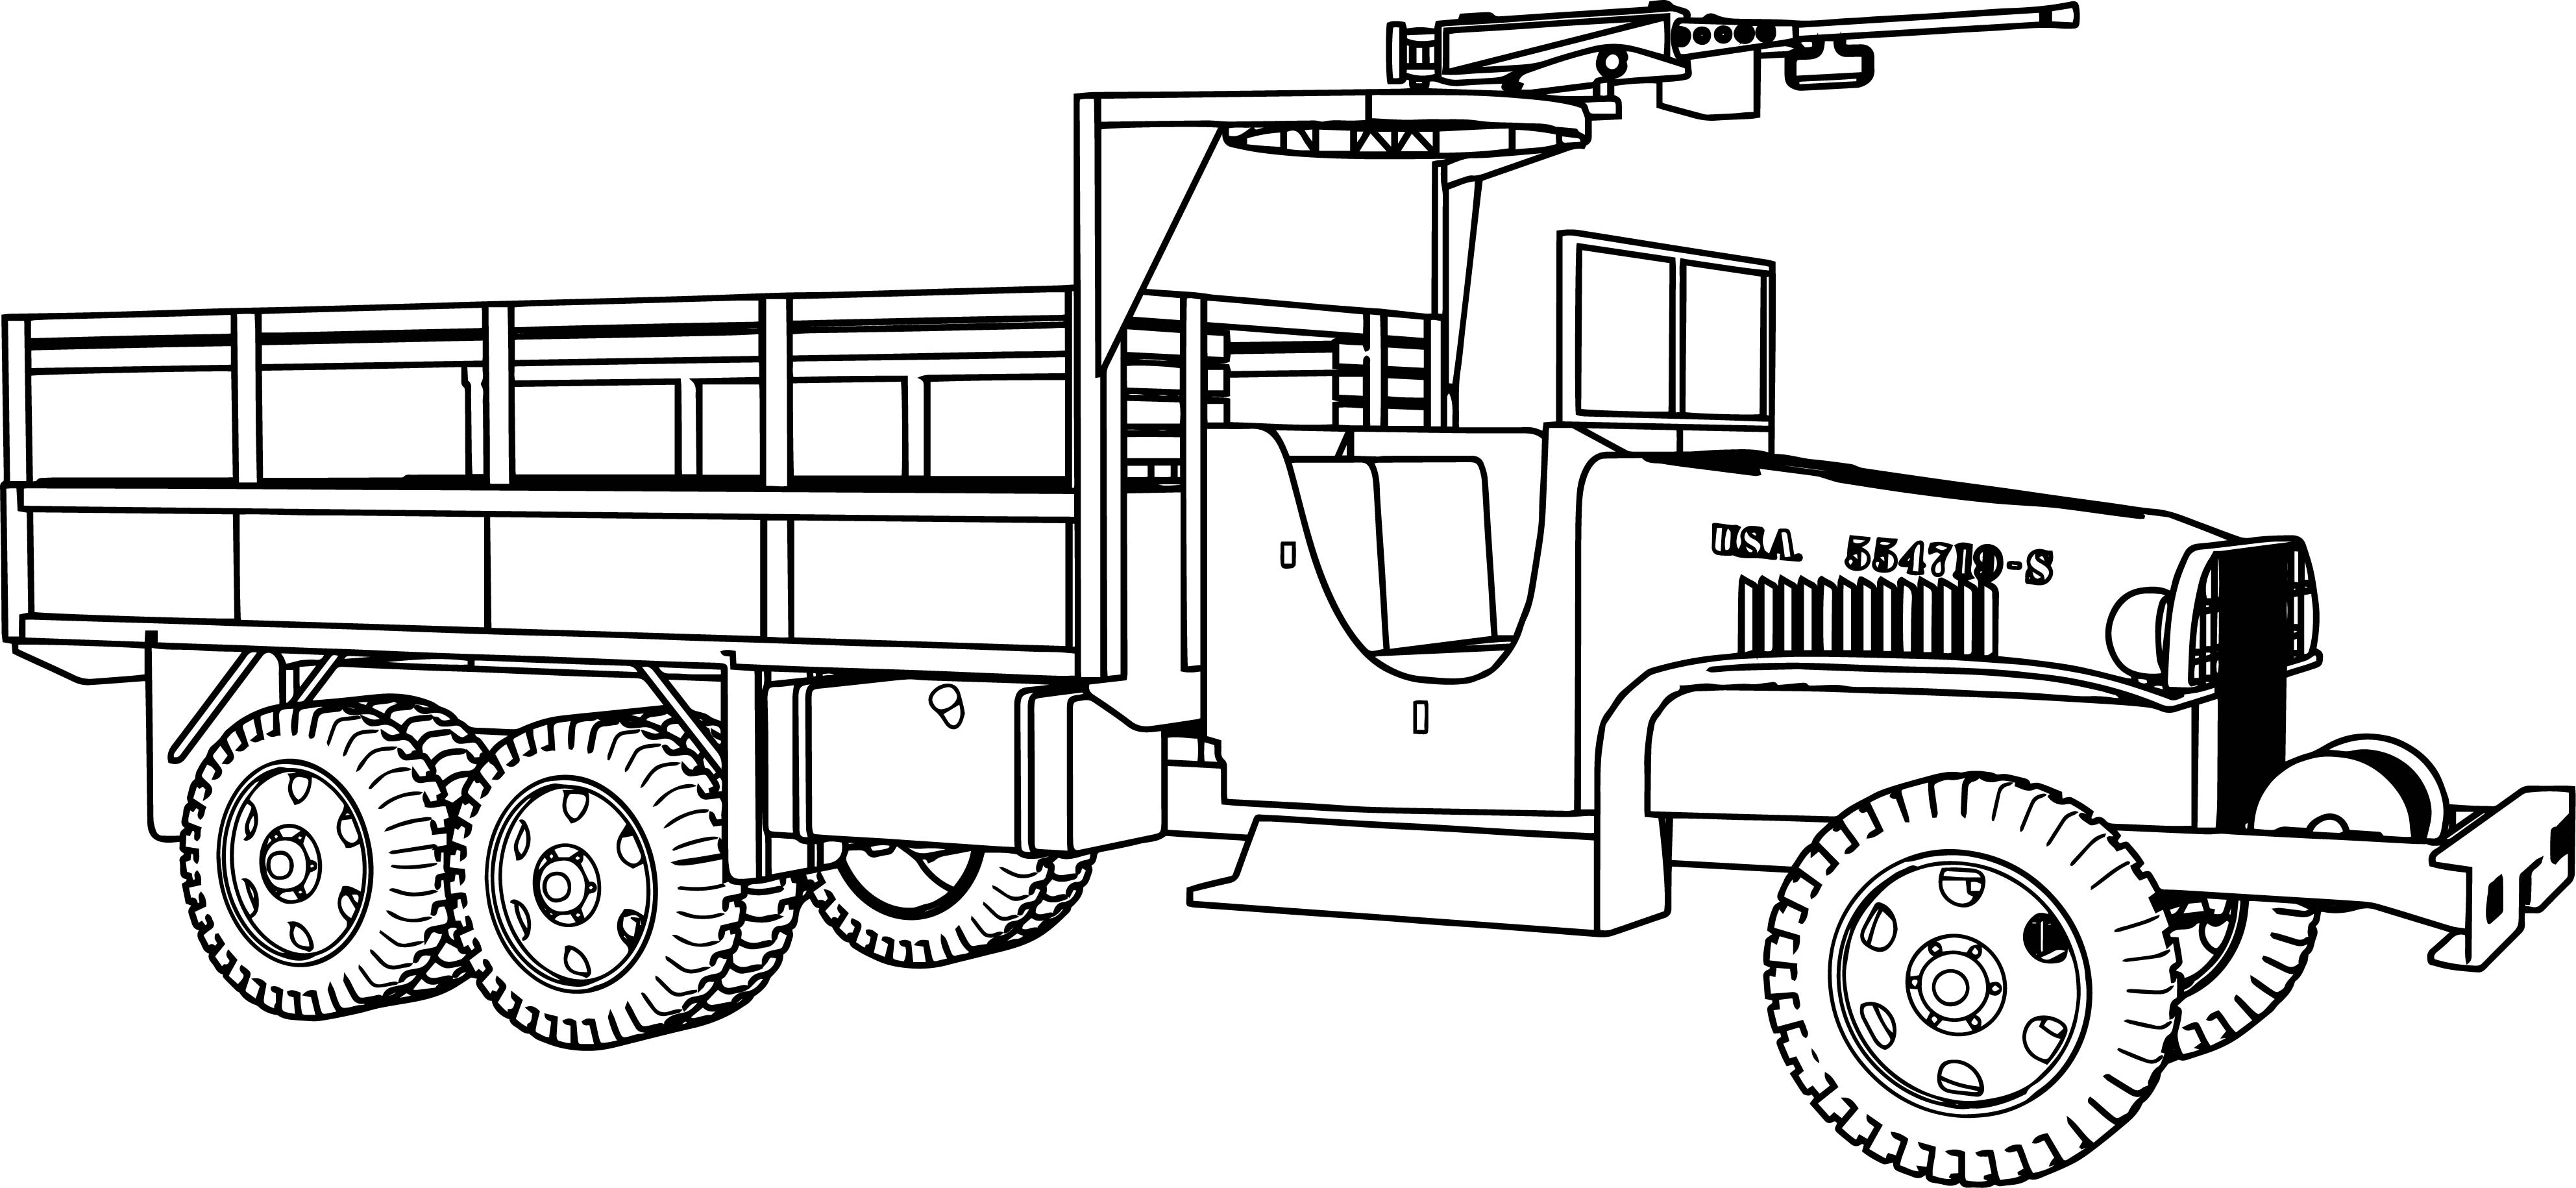 gmc 6 6 military truck coloring page. Black Bedroom Furniture Sets. Home Design Ideas